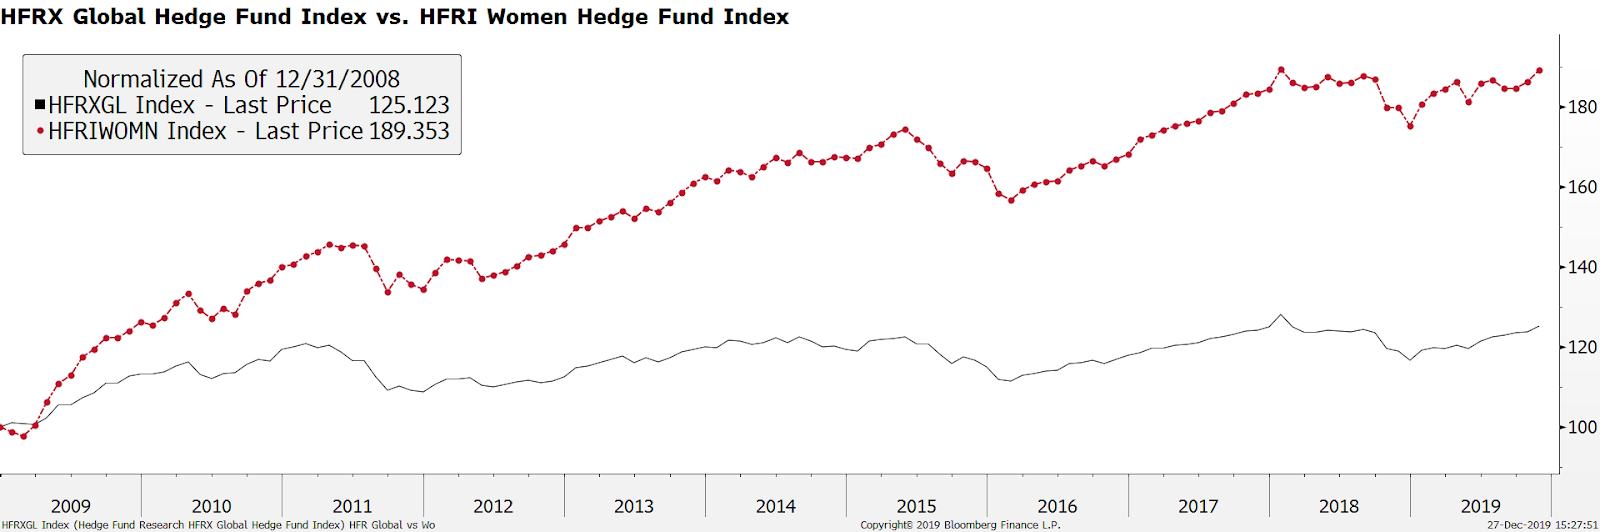 Global hedge fund index vs women-owned hedge fund index